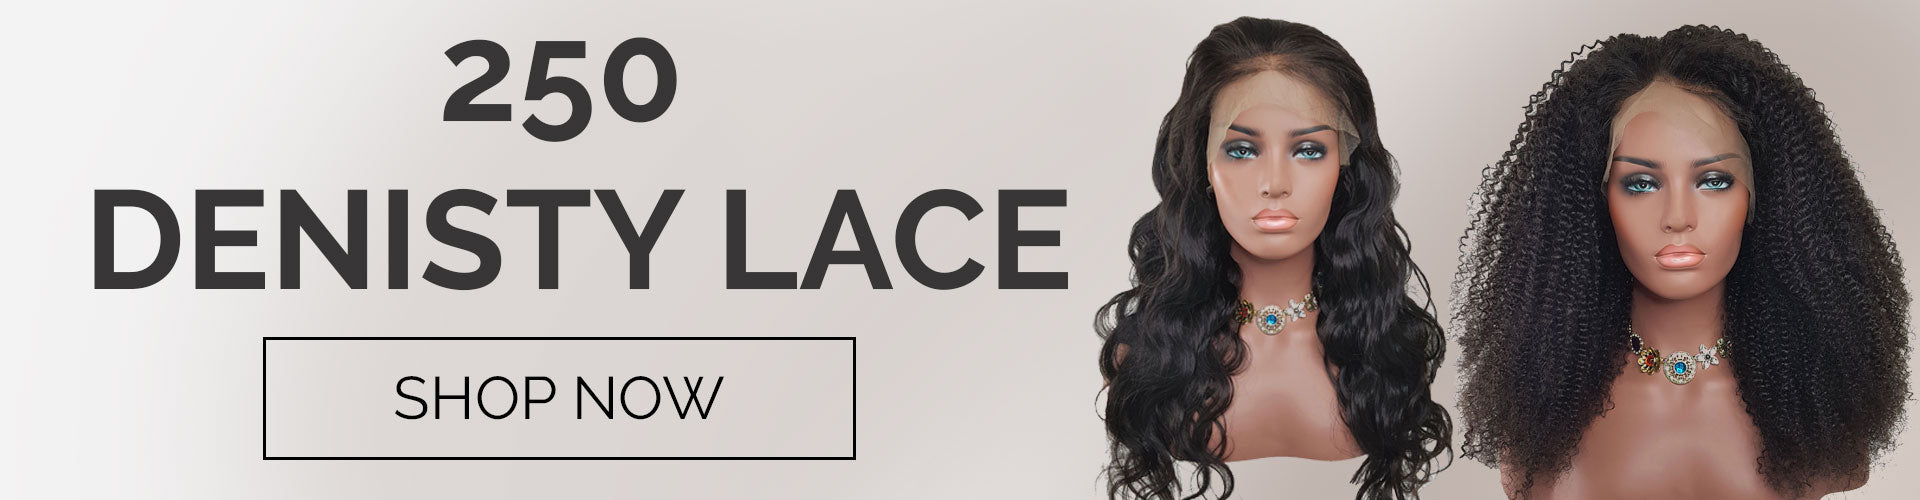 250% Denisty Lace Front Wig